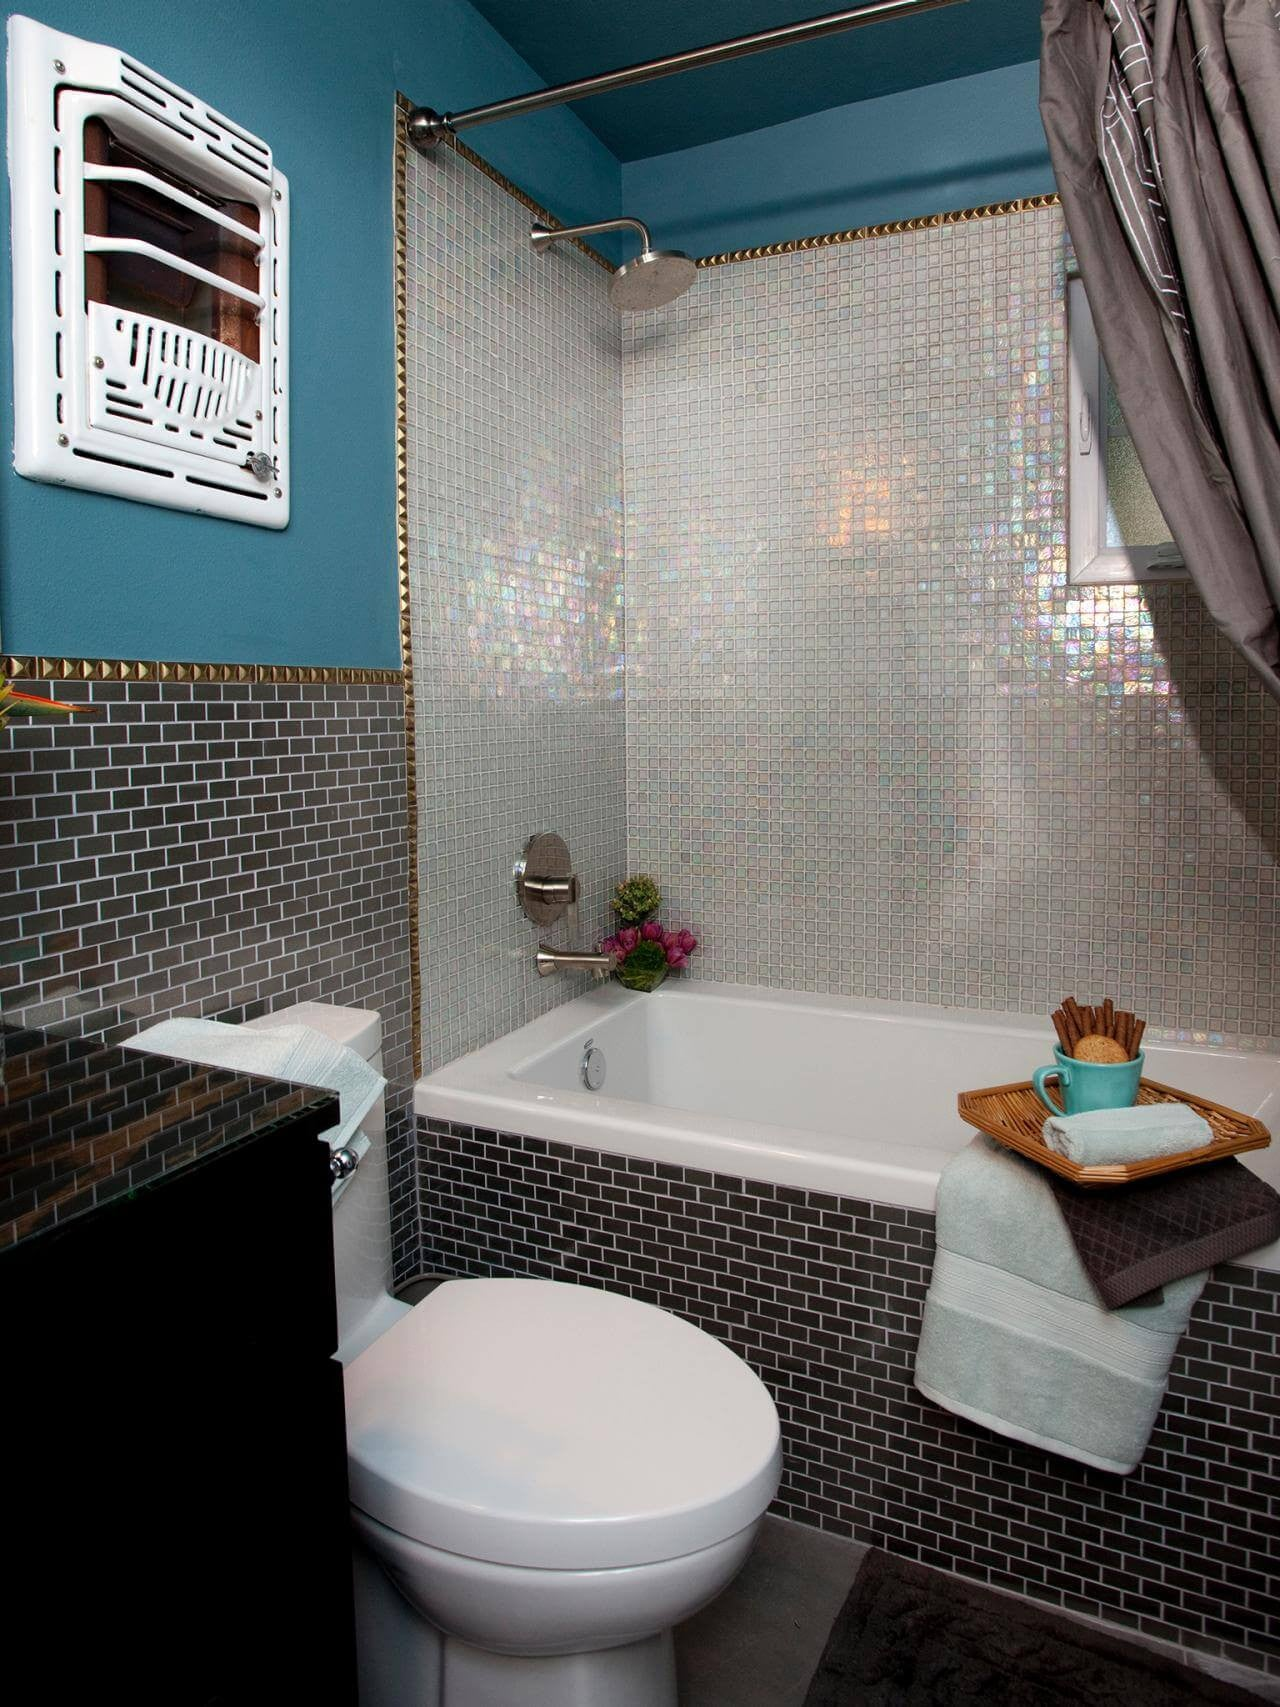 5 Decorating Ideas For Small Bathrooms: 50 Small Bathroom & Shower Ideas